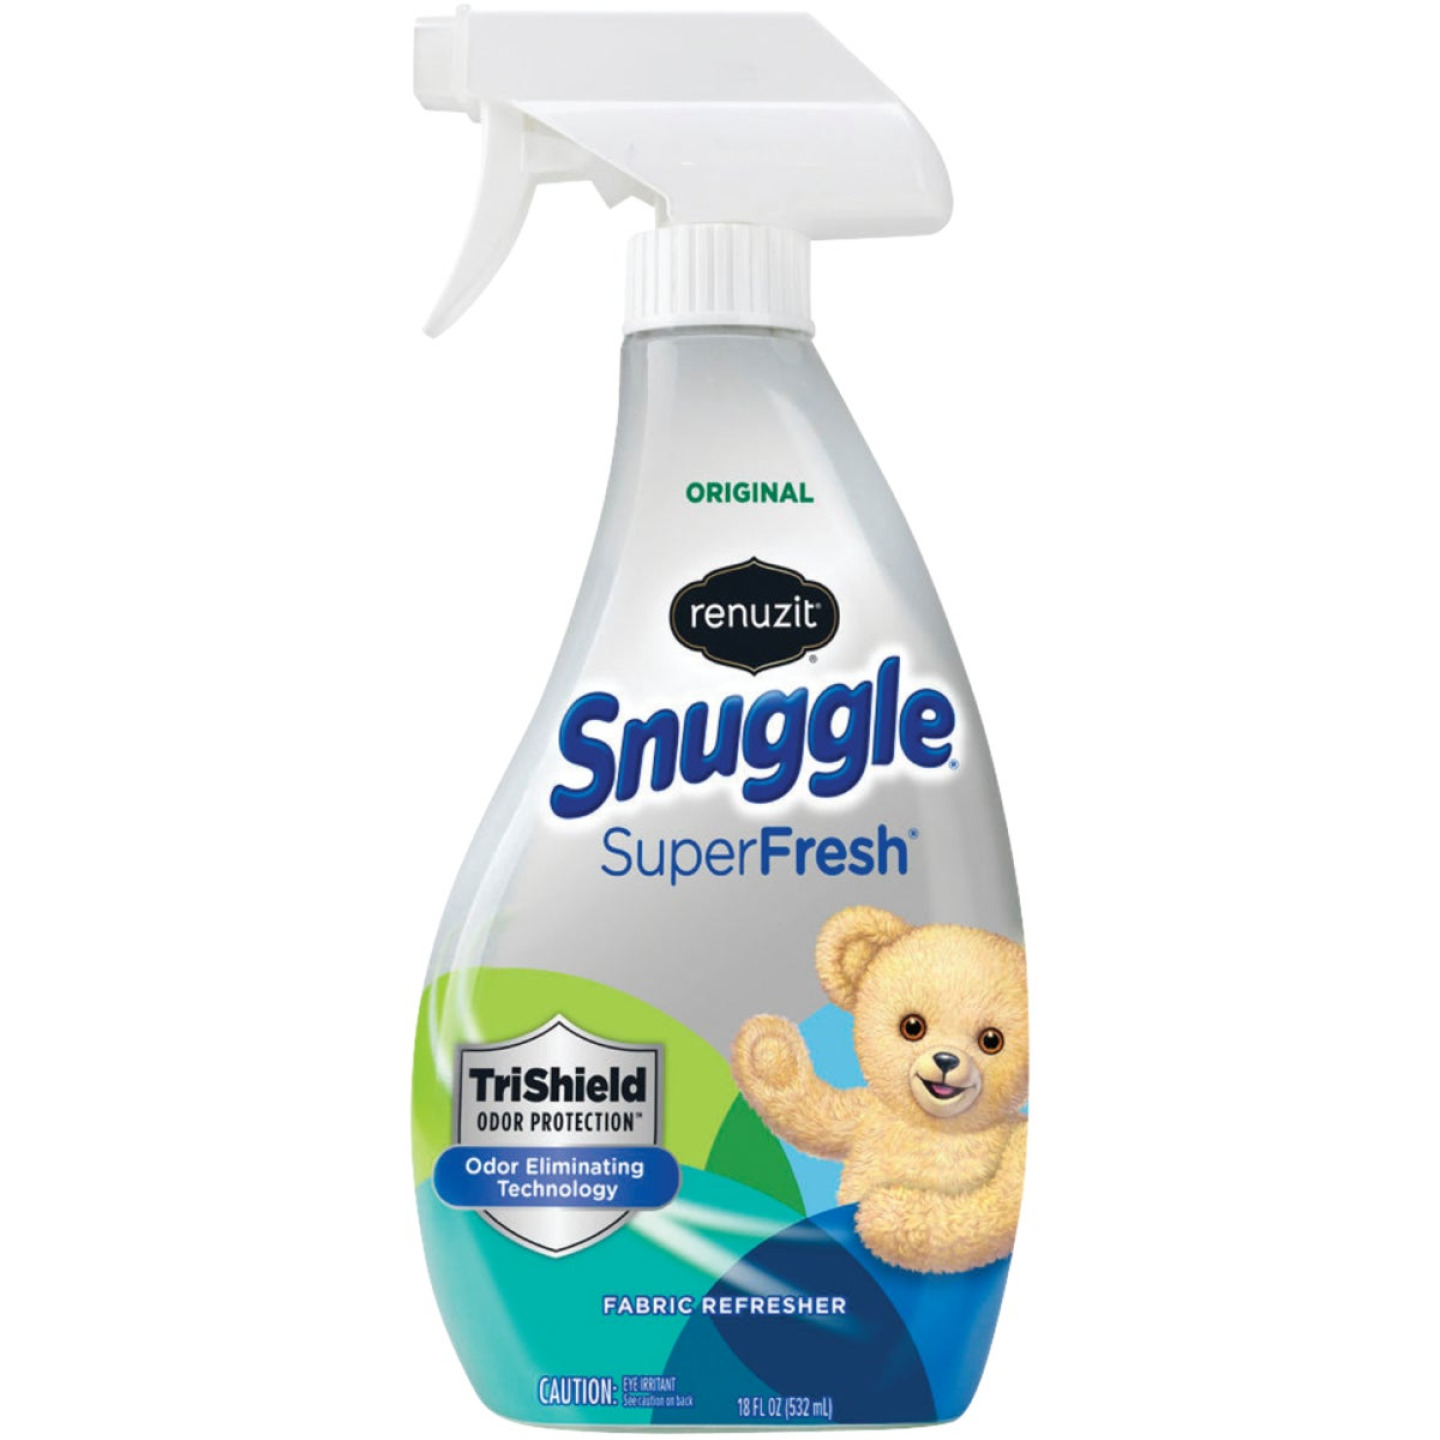 Renuzit Snuggle SuperFresh 18 Oz. Original Fabric Refresher Spray TriShield Odor Protection Image 1